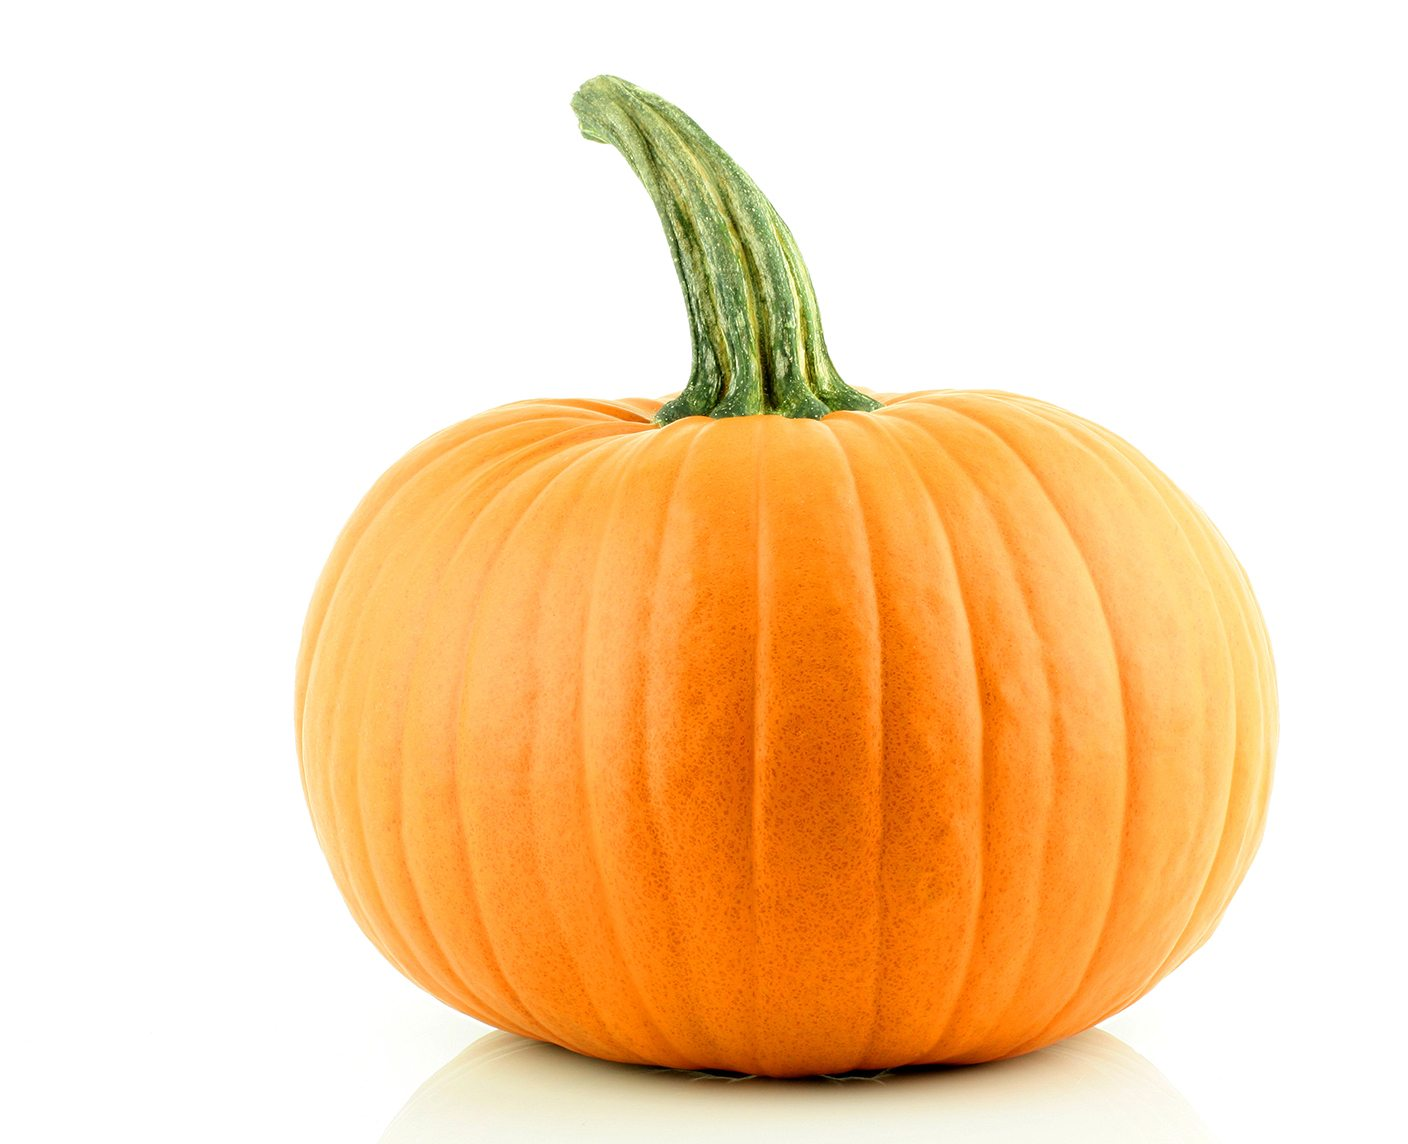 A nice orange Pumpkin on a white background.